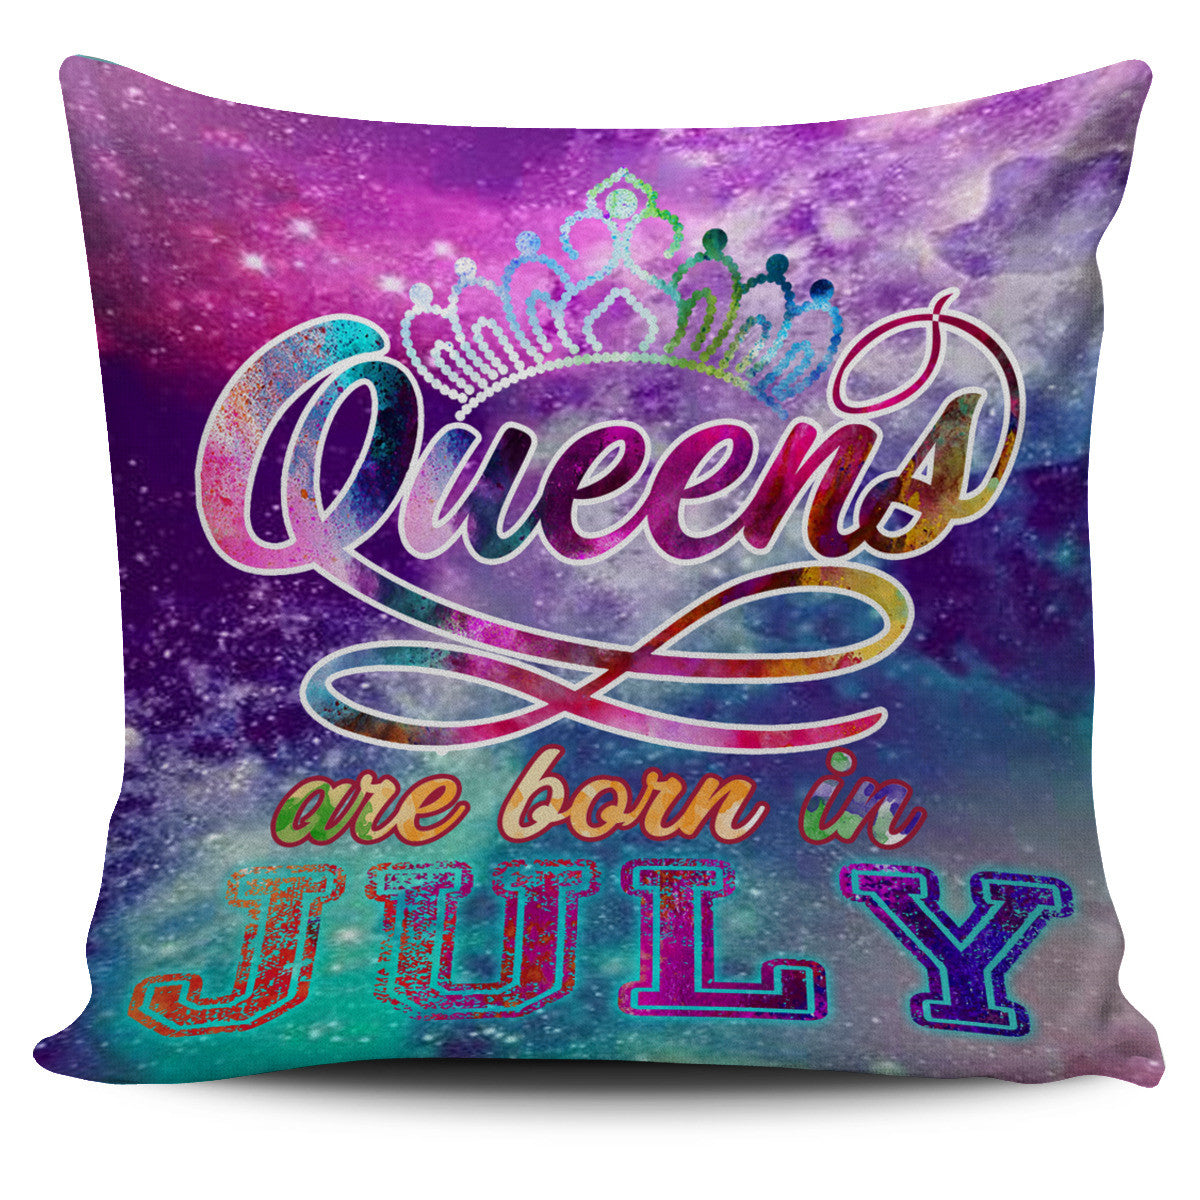 QUEENS ARE BORN IN JULY - PILLOW CASE